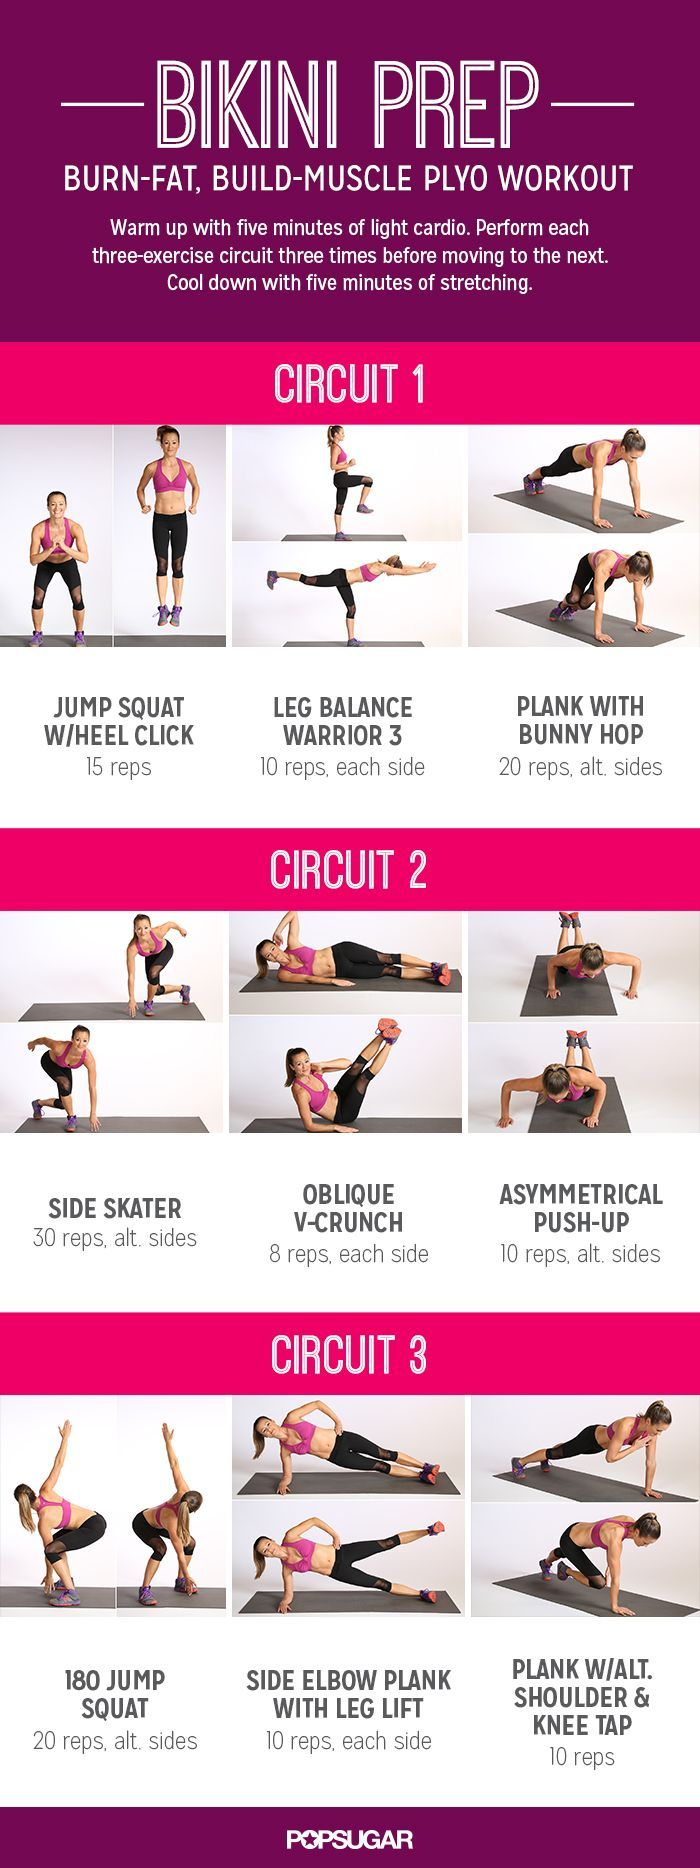 The nine moves in this circuit work your entire body, and half of them are plyo.